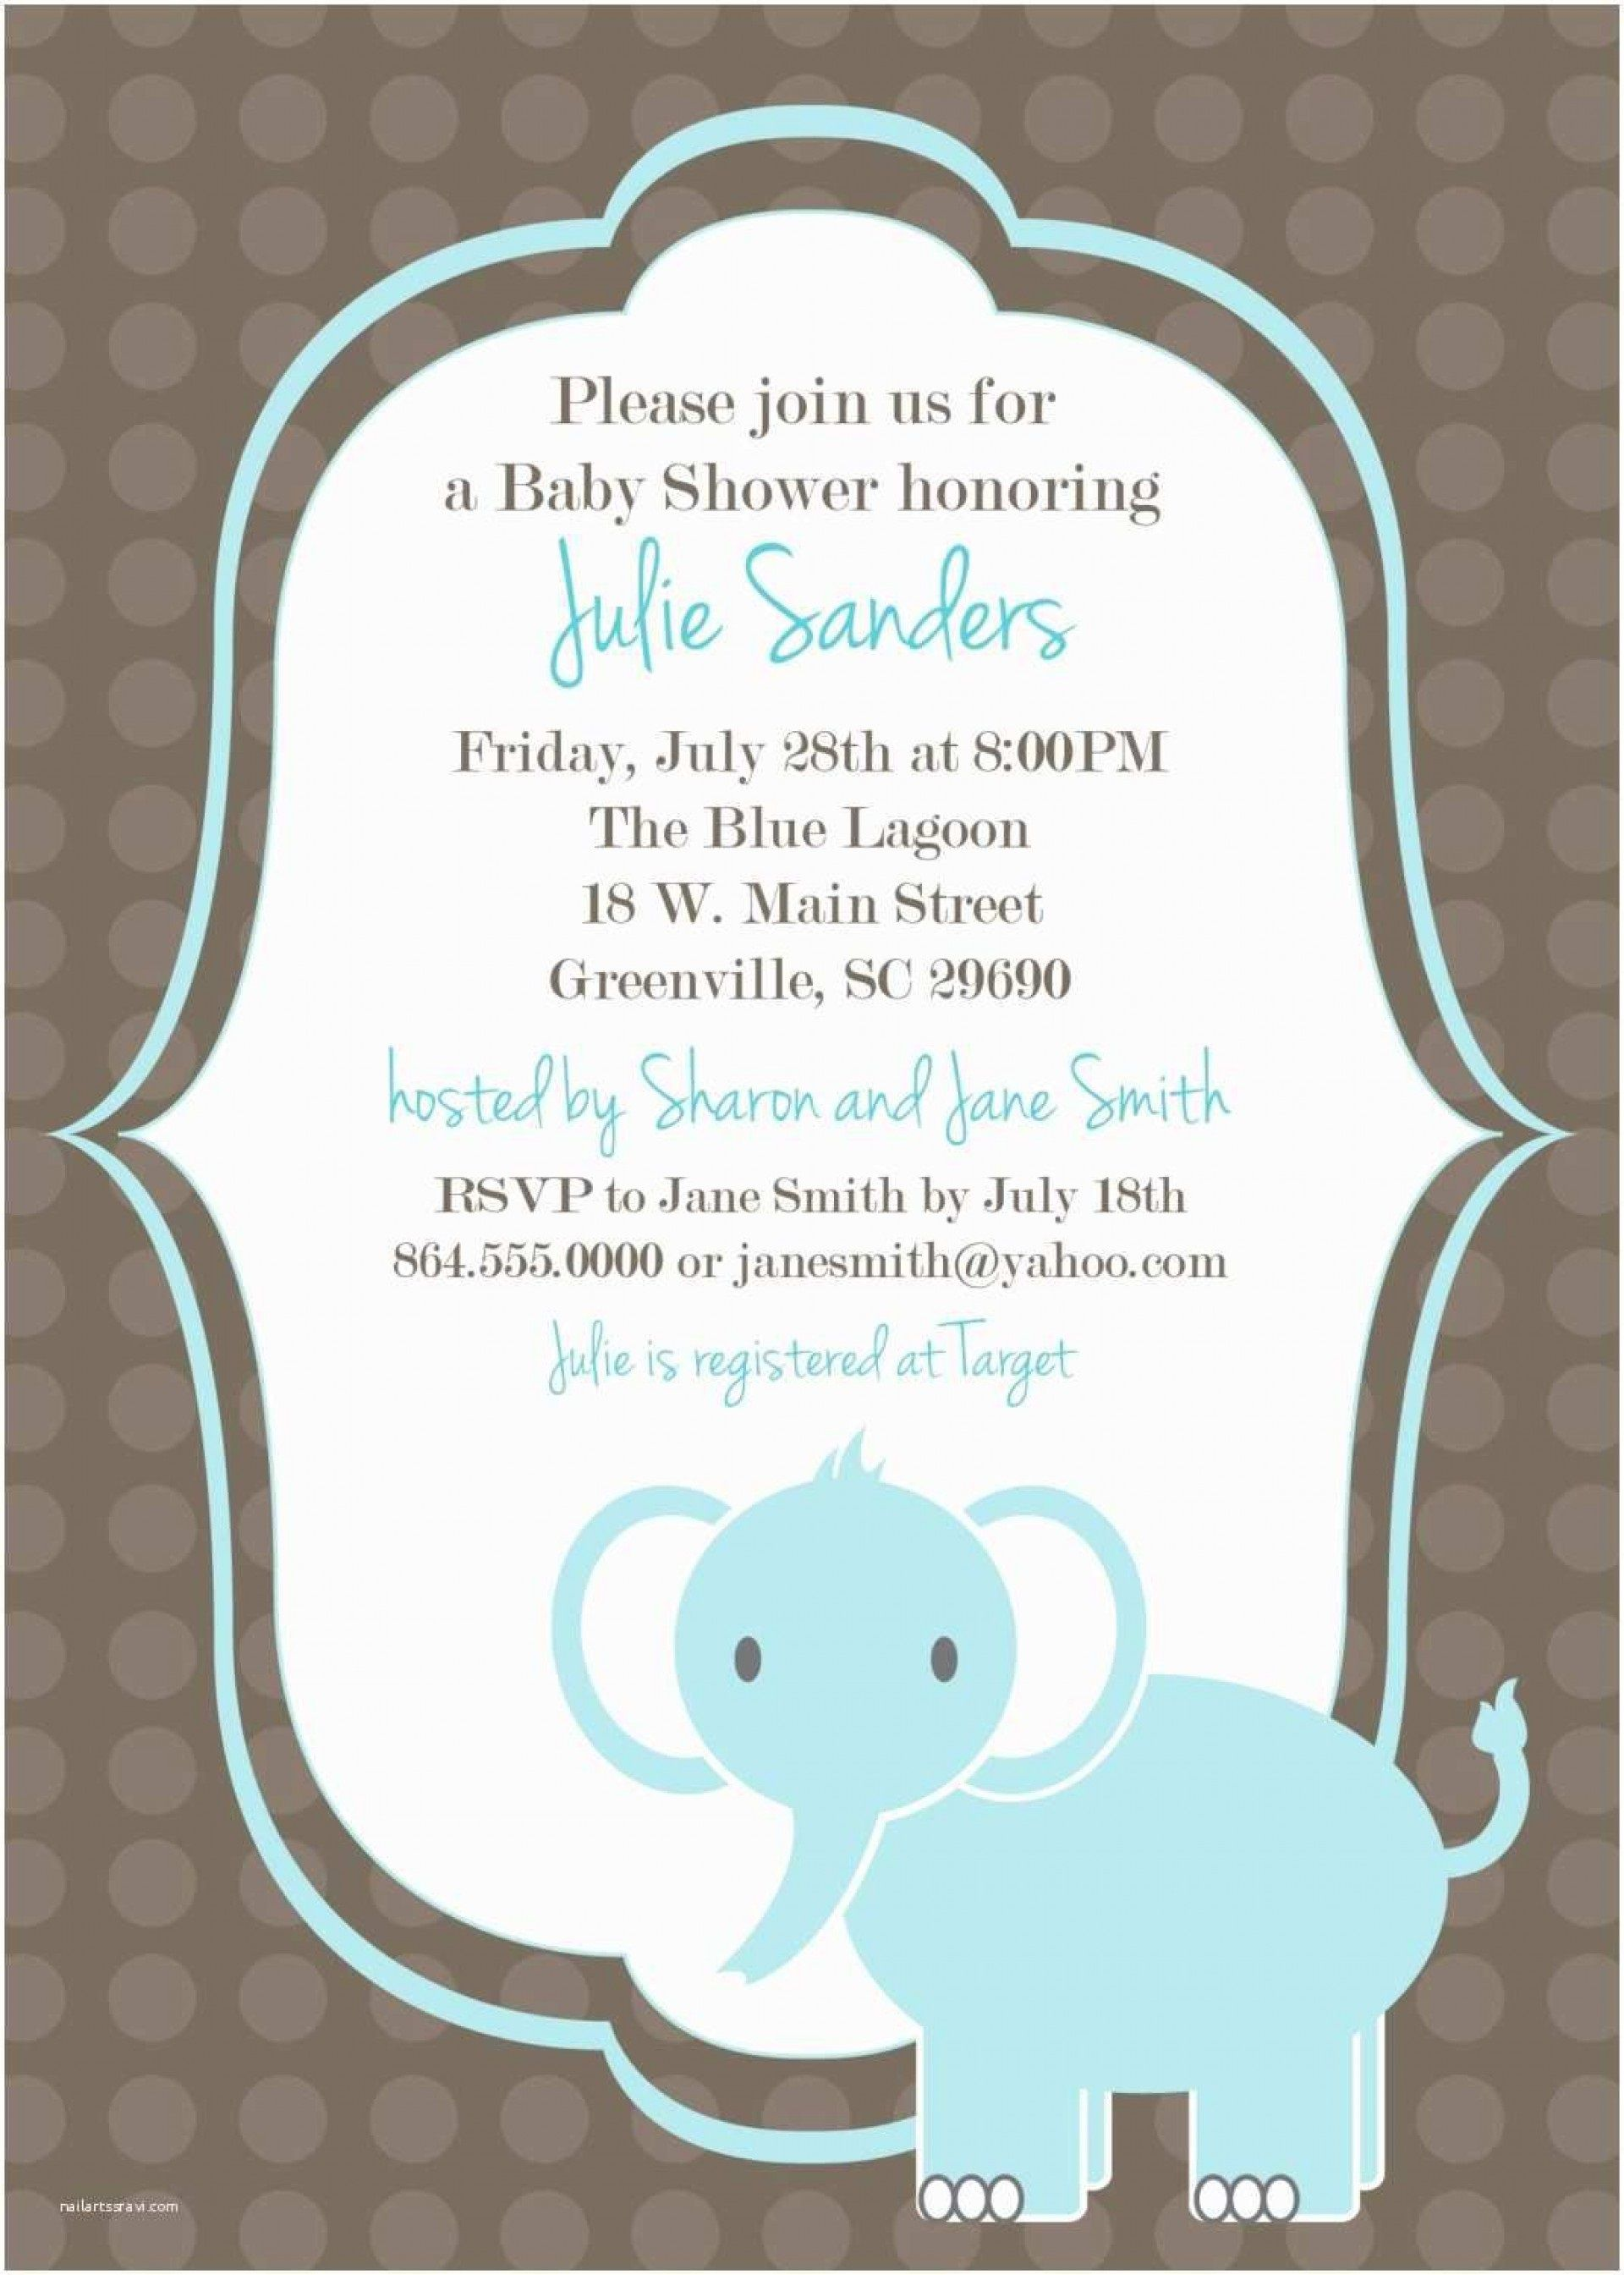 001 Wondrou Baby Shower Invite Template Word Concept  Invitation Wording Sample Free ExampleFull